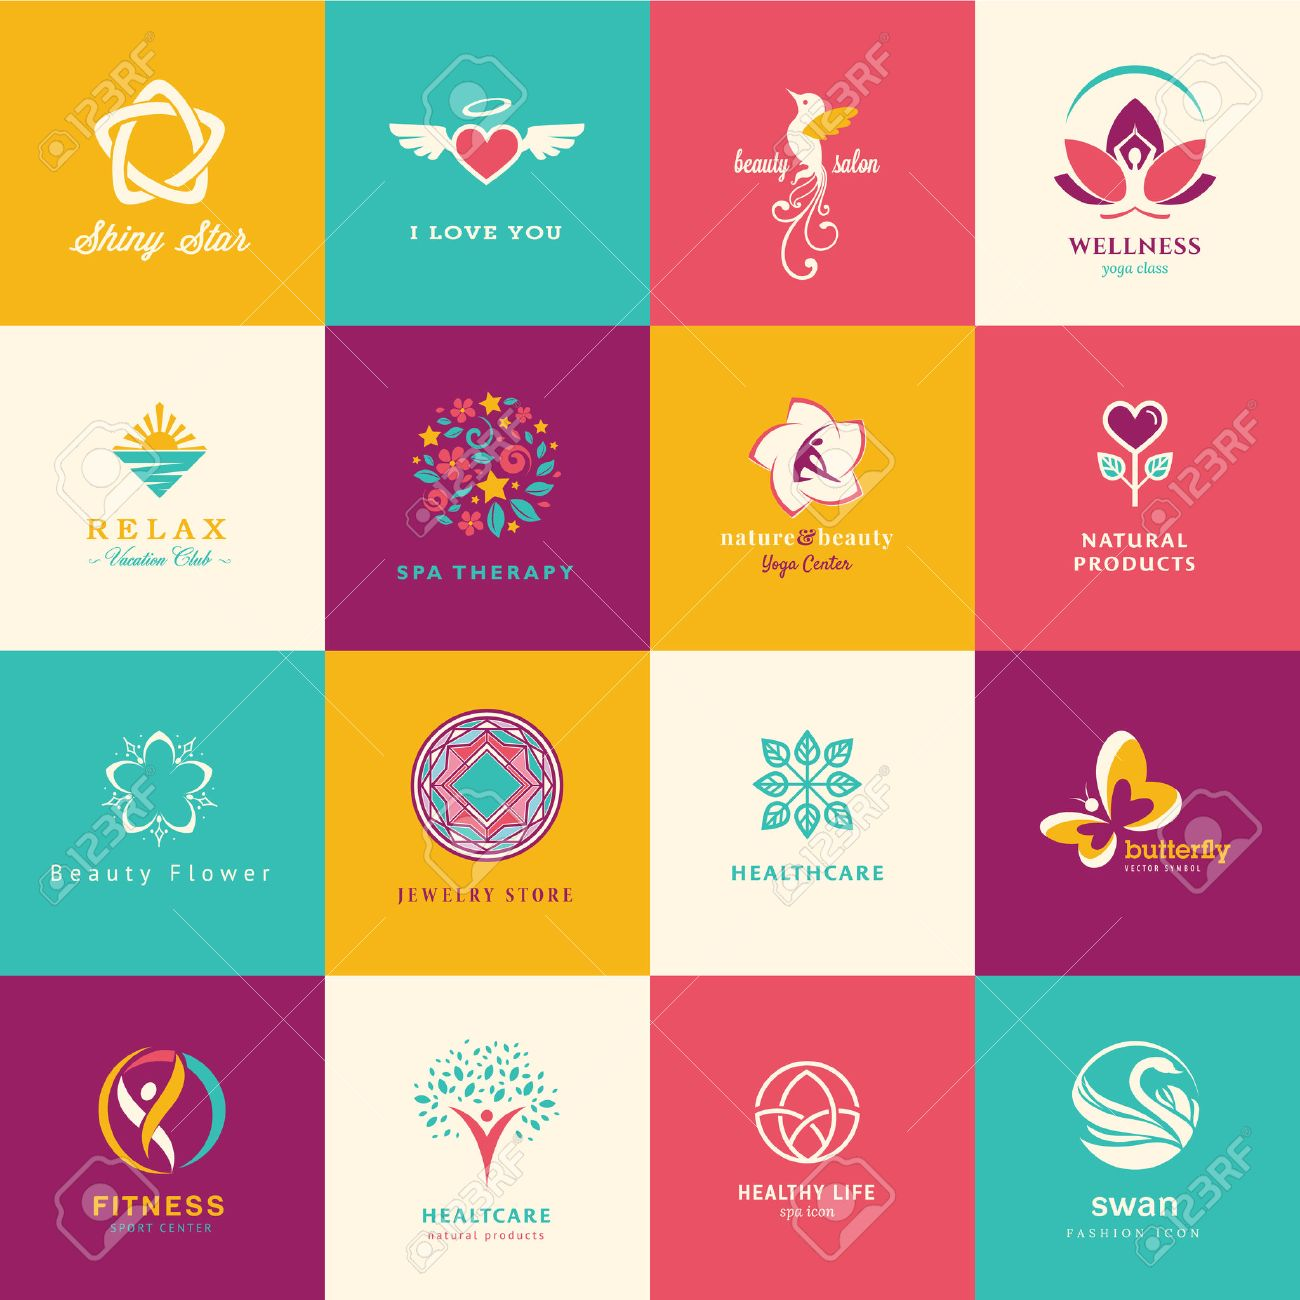 Set of flat icons for beauty, healthcare, wellness and fashion - 24062205